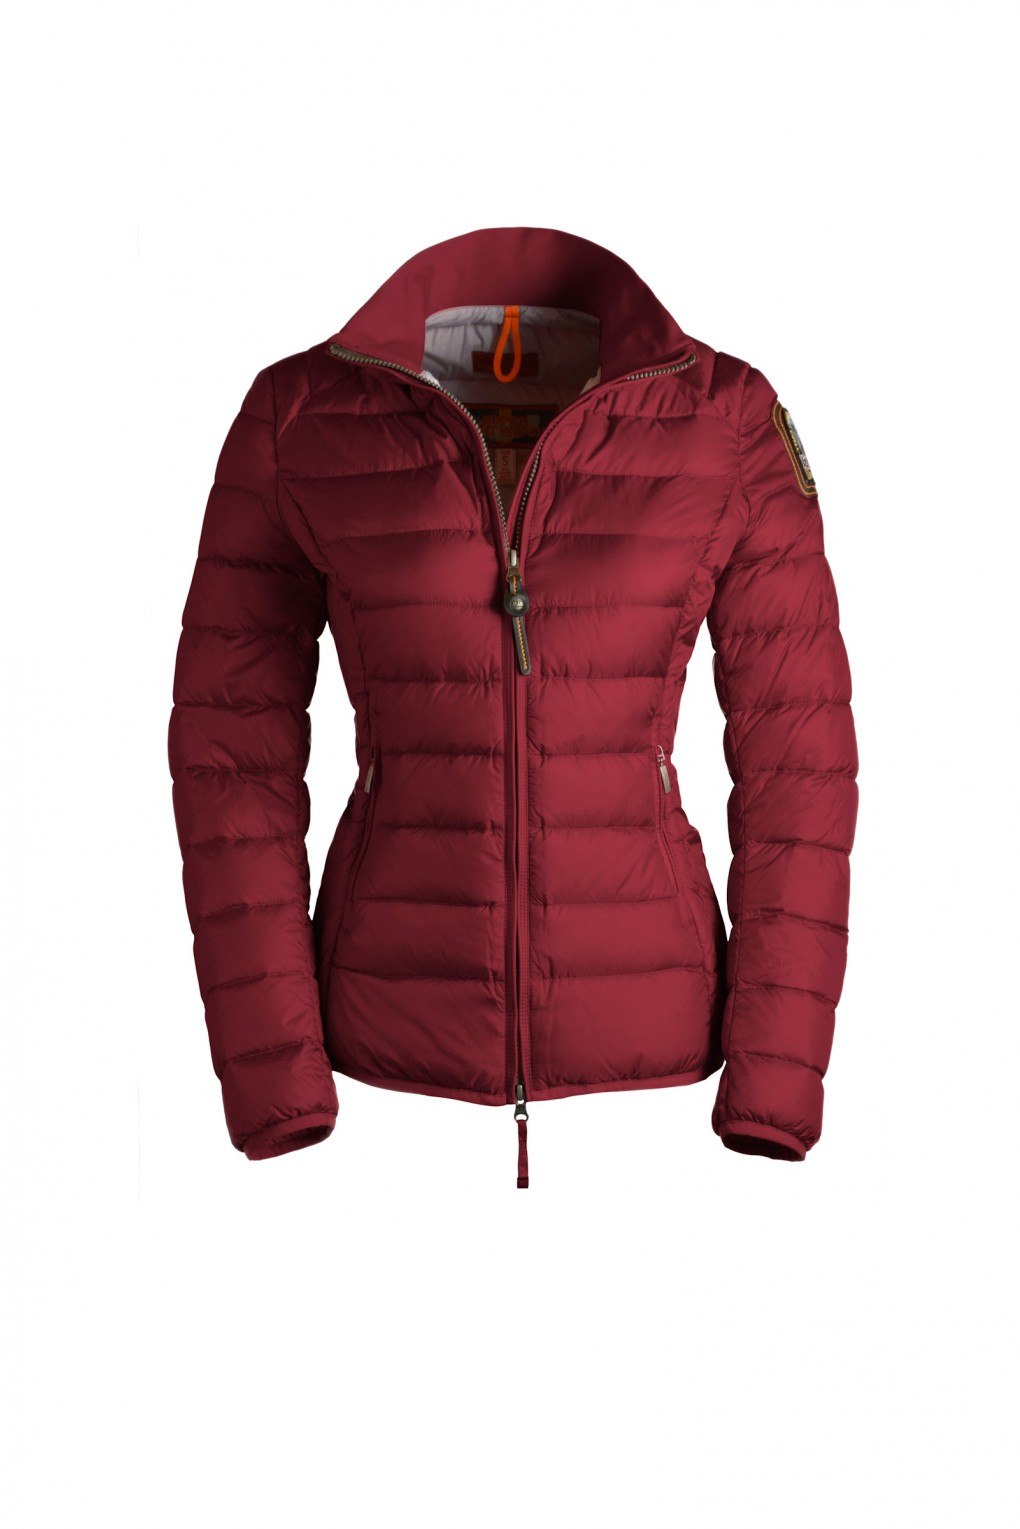 parajumpers GEENA 6 woman outerwear Red